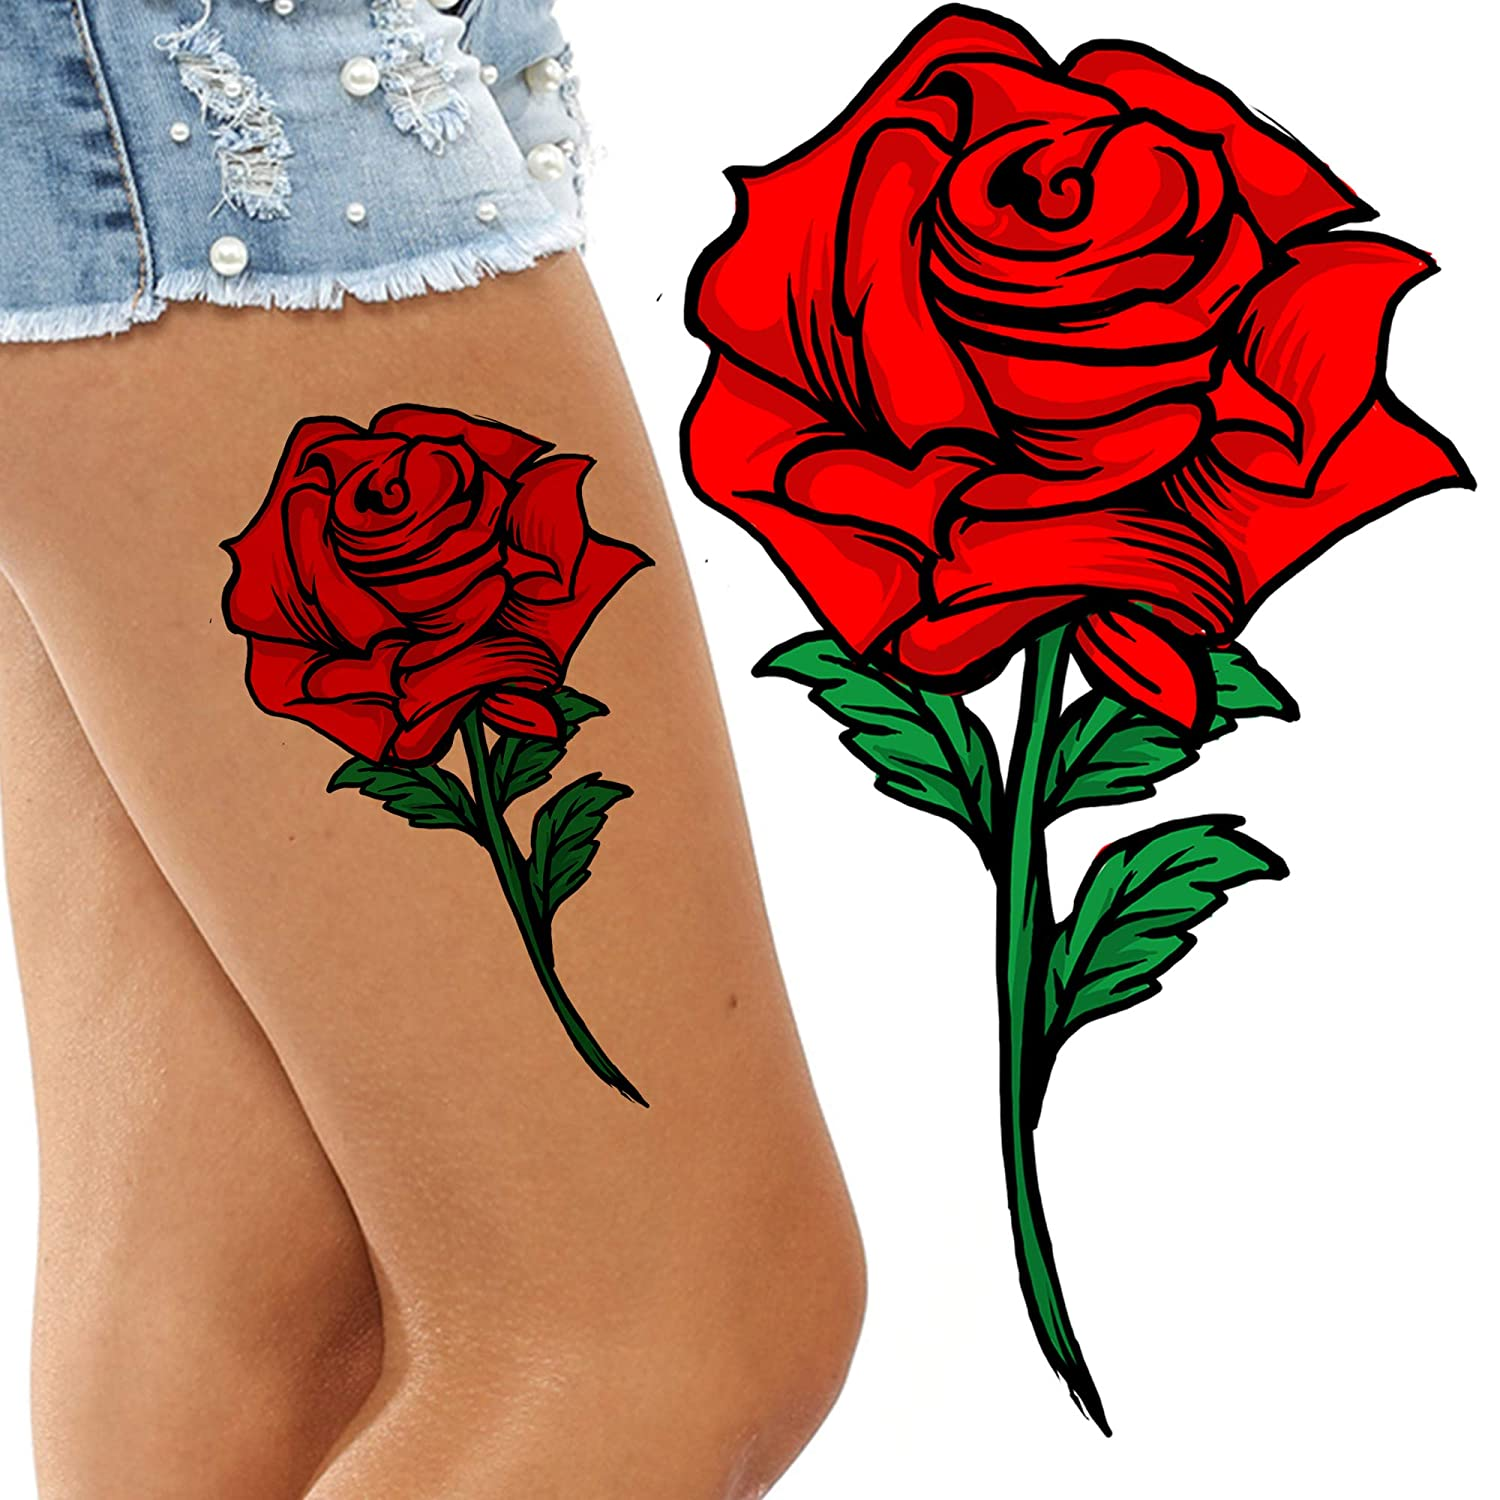 Amazon Com Stick On Flower Retro Vintage Red Rose Tattoo Adult Temporary Tattoo Sticker Female Body Art Transfers Women Realistic Waterproof Flora Temp Tattoo Legs Arms Belly Festival Halloween Beauty These amazing rose tattoo designs will go well with your image and preferences. stick on flower retro vintage red rose